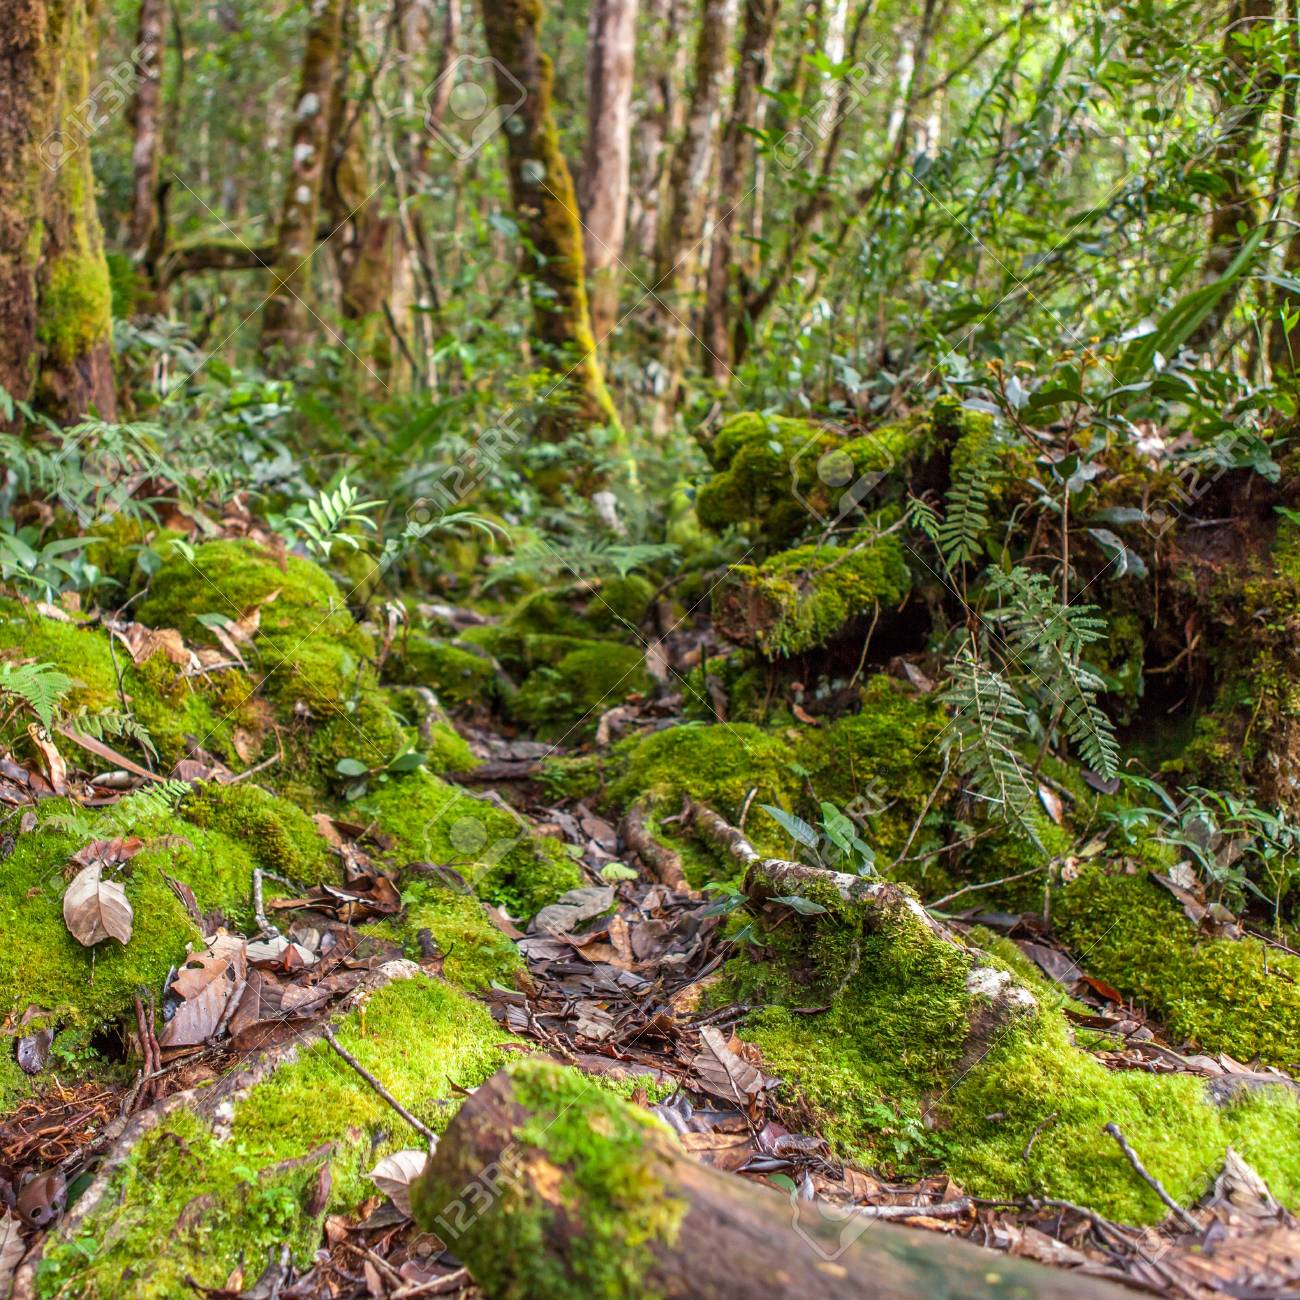 Wild Outdoor Jungle Trail Rainforest Scenery With Green Moss